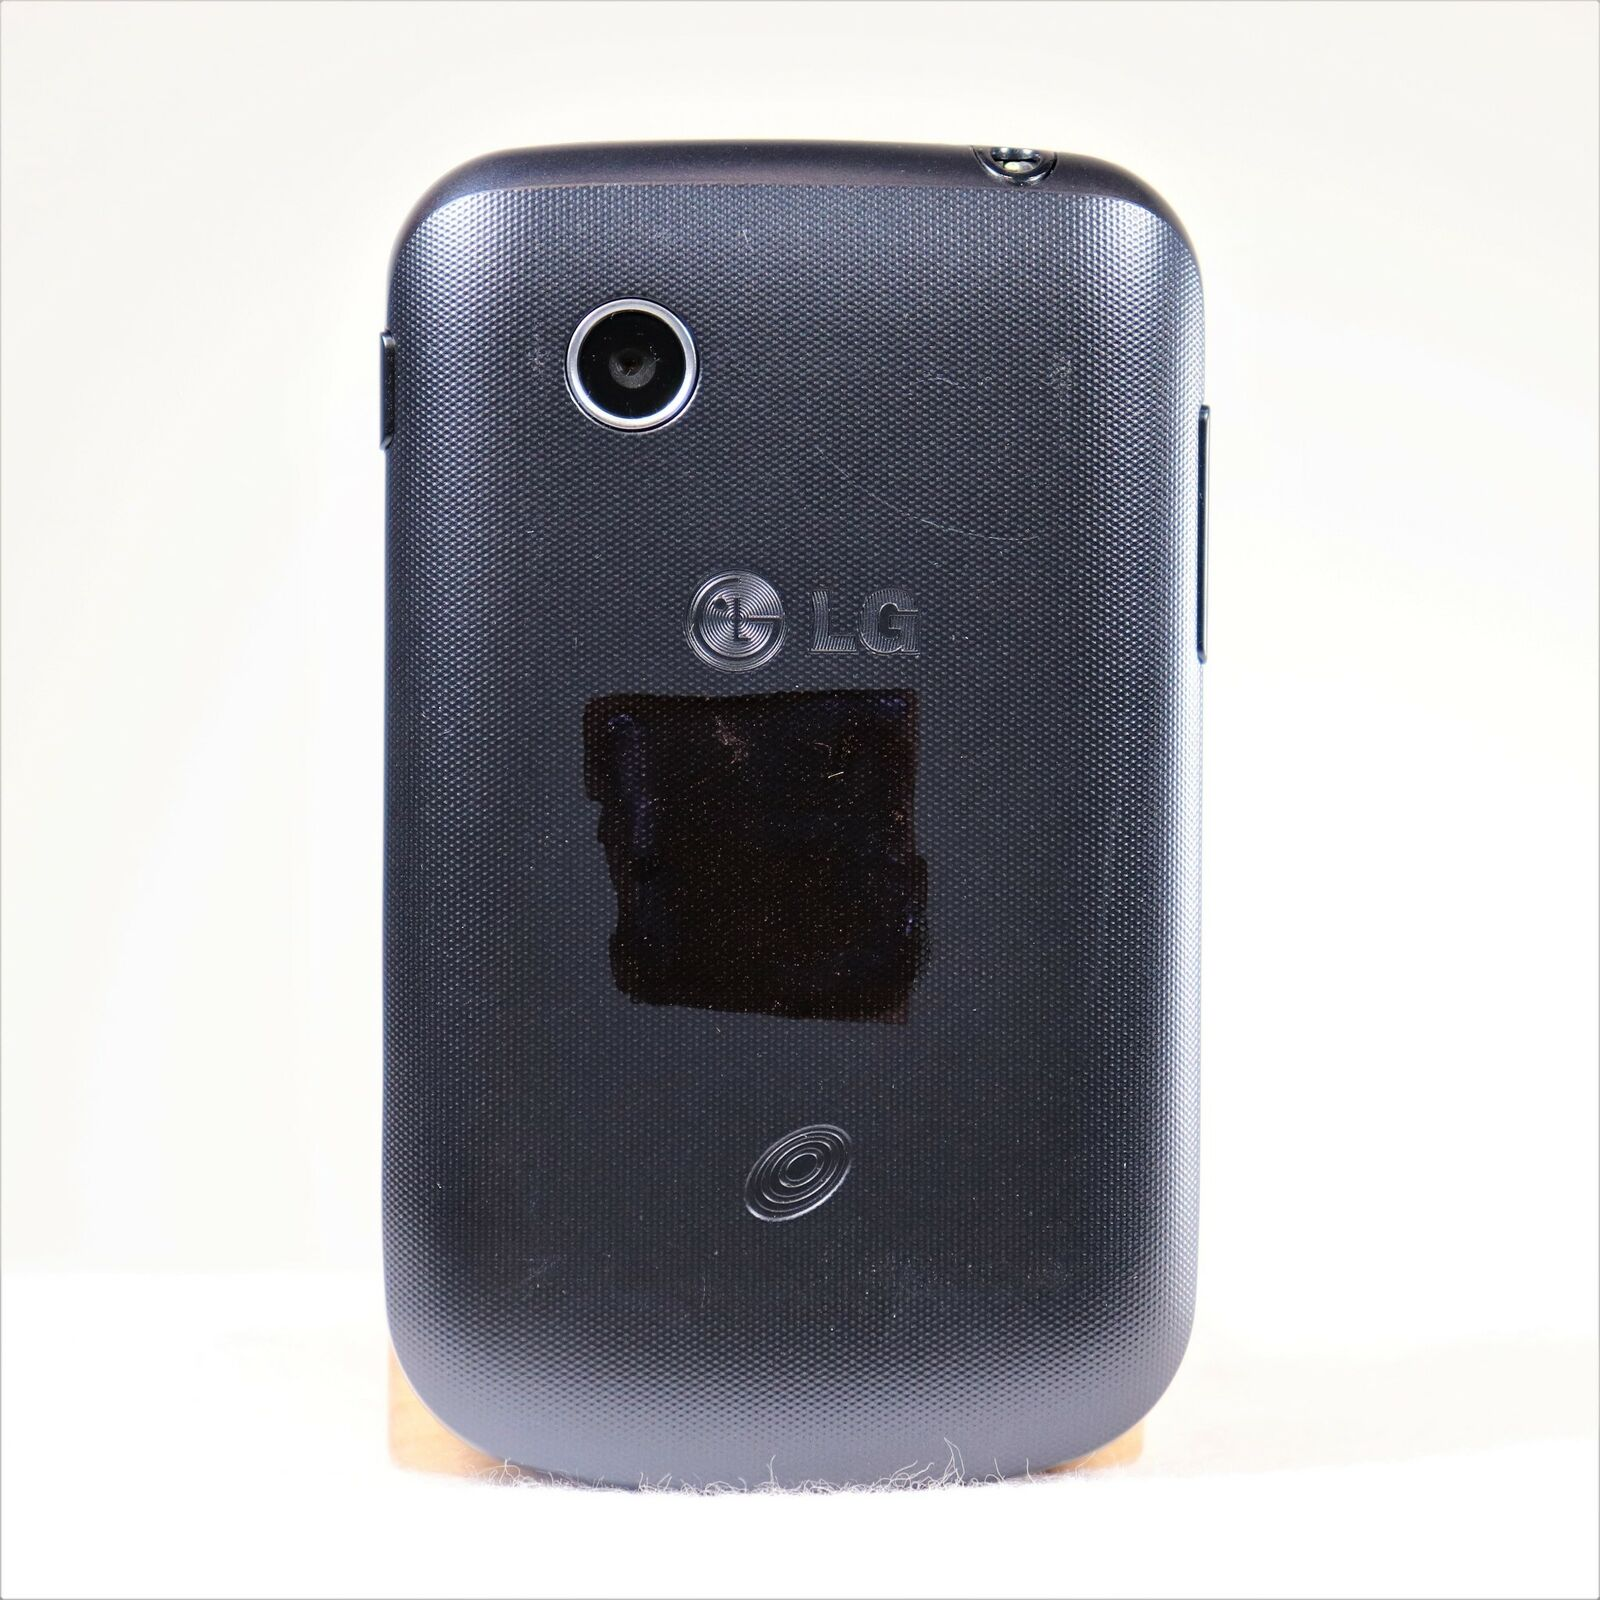 Wholesale LG 306G Tracfone Smartphone Easy to Use Friendly ⚡ Fast Shipping! ⚡